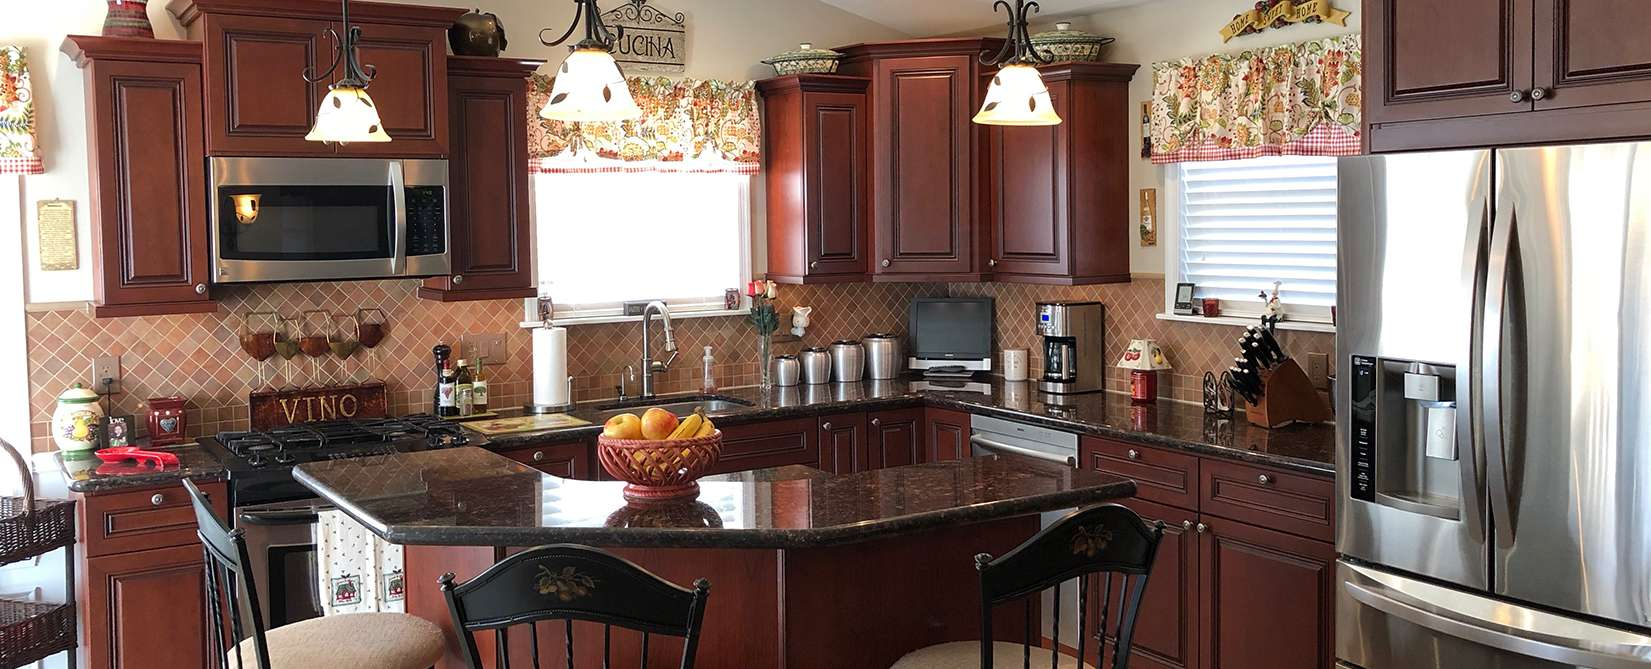 ideal remodeling south jersey home remodeling contractor ideal